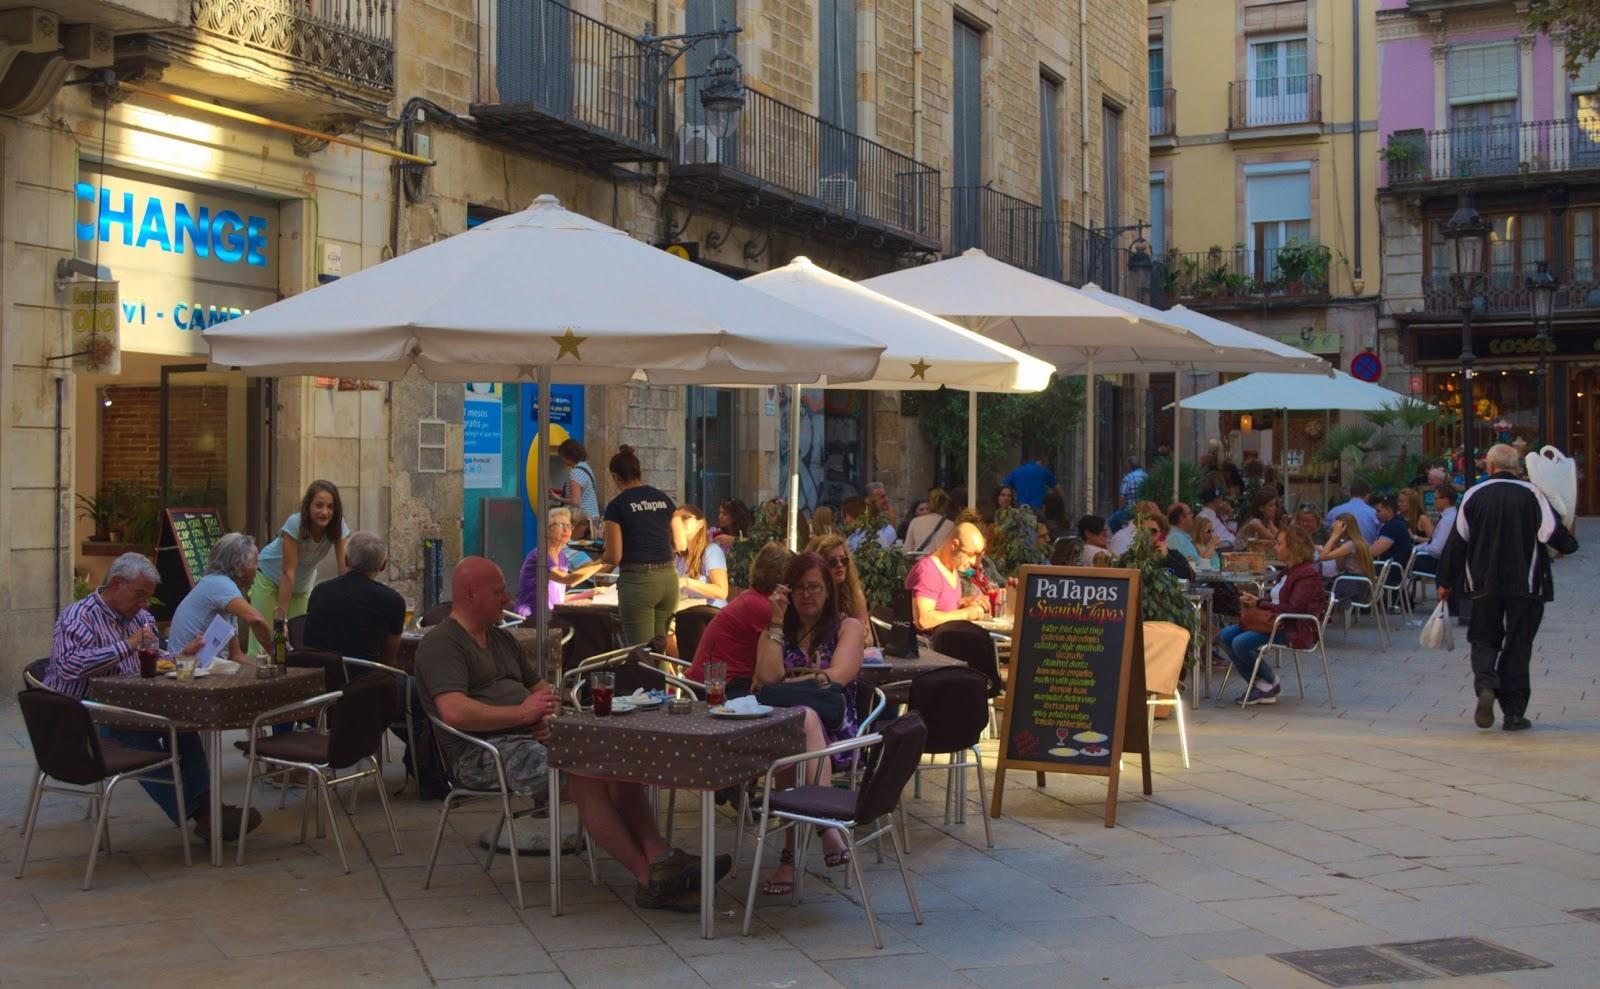 People eating and drinking on a bustling outdoor terrace in Barcelona.